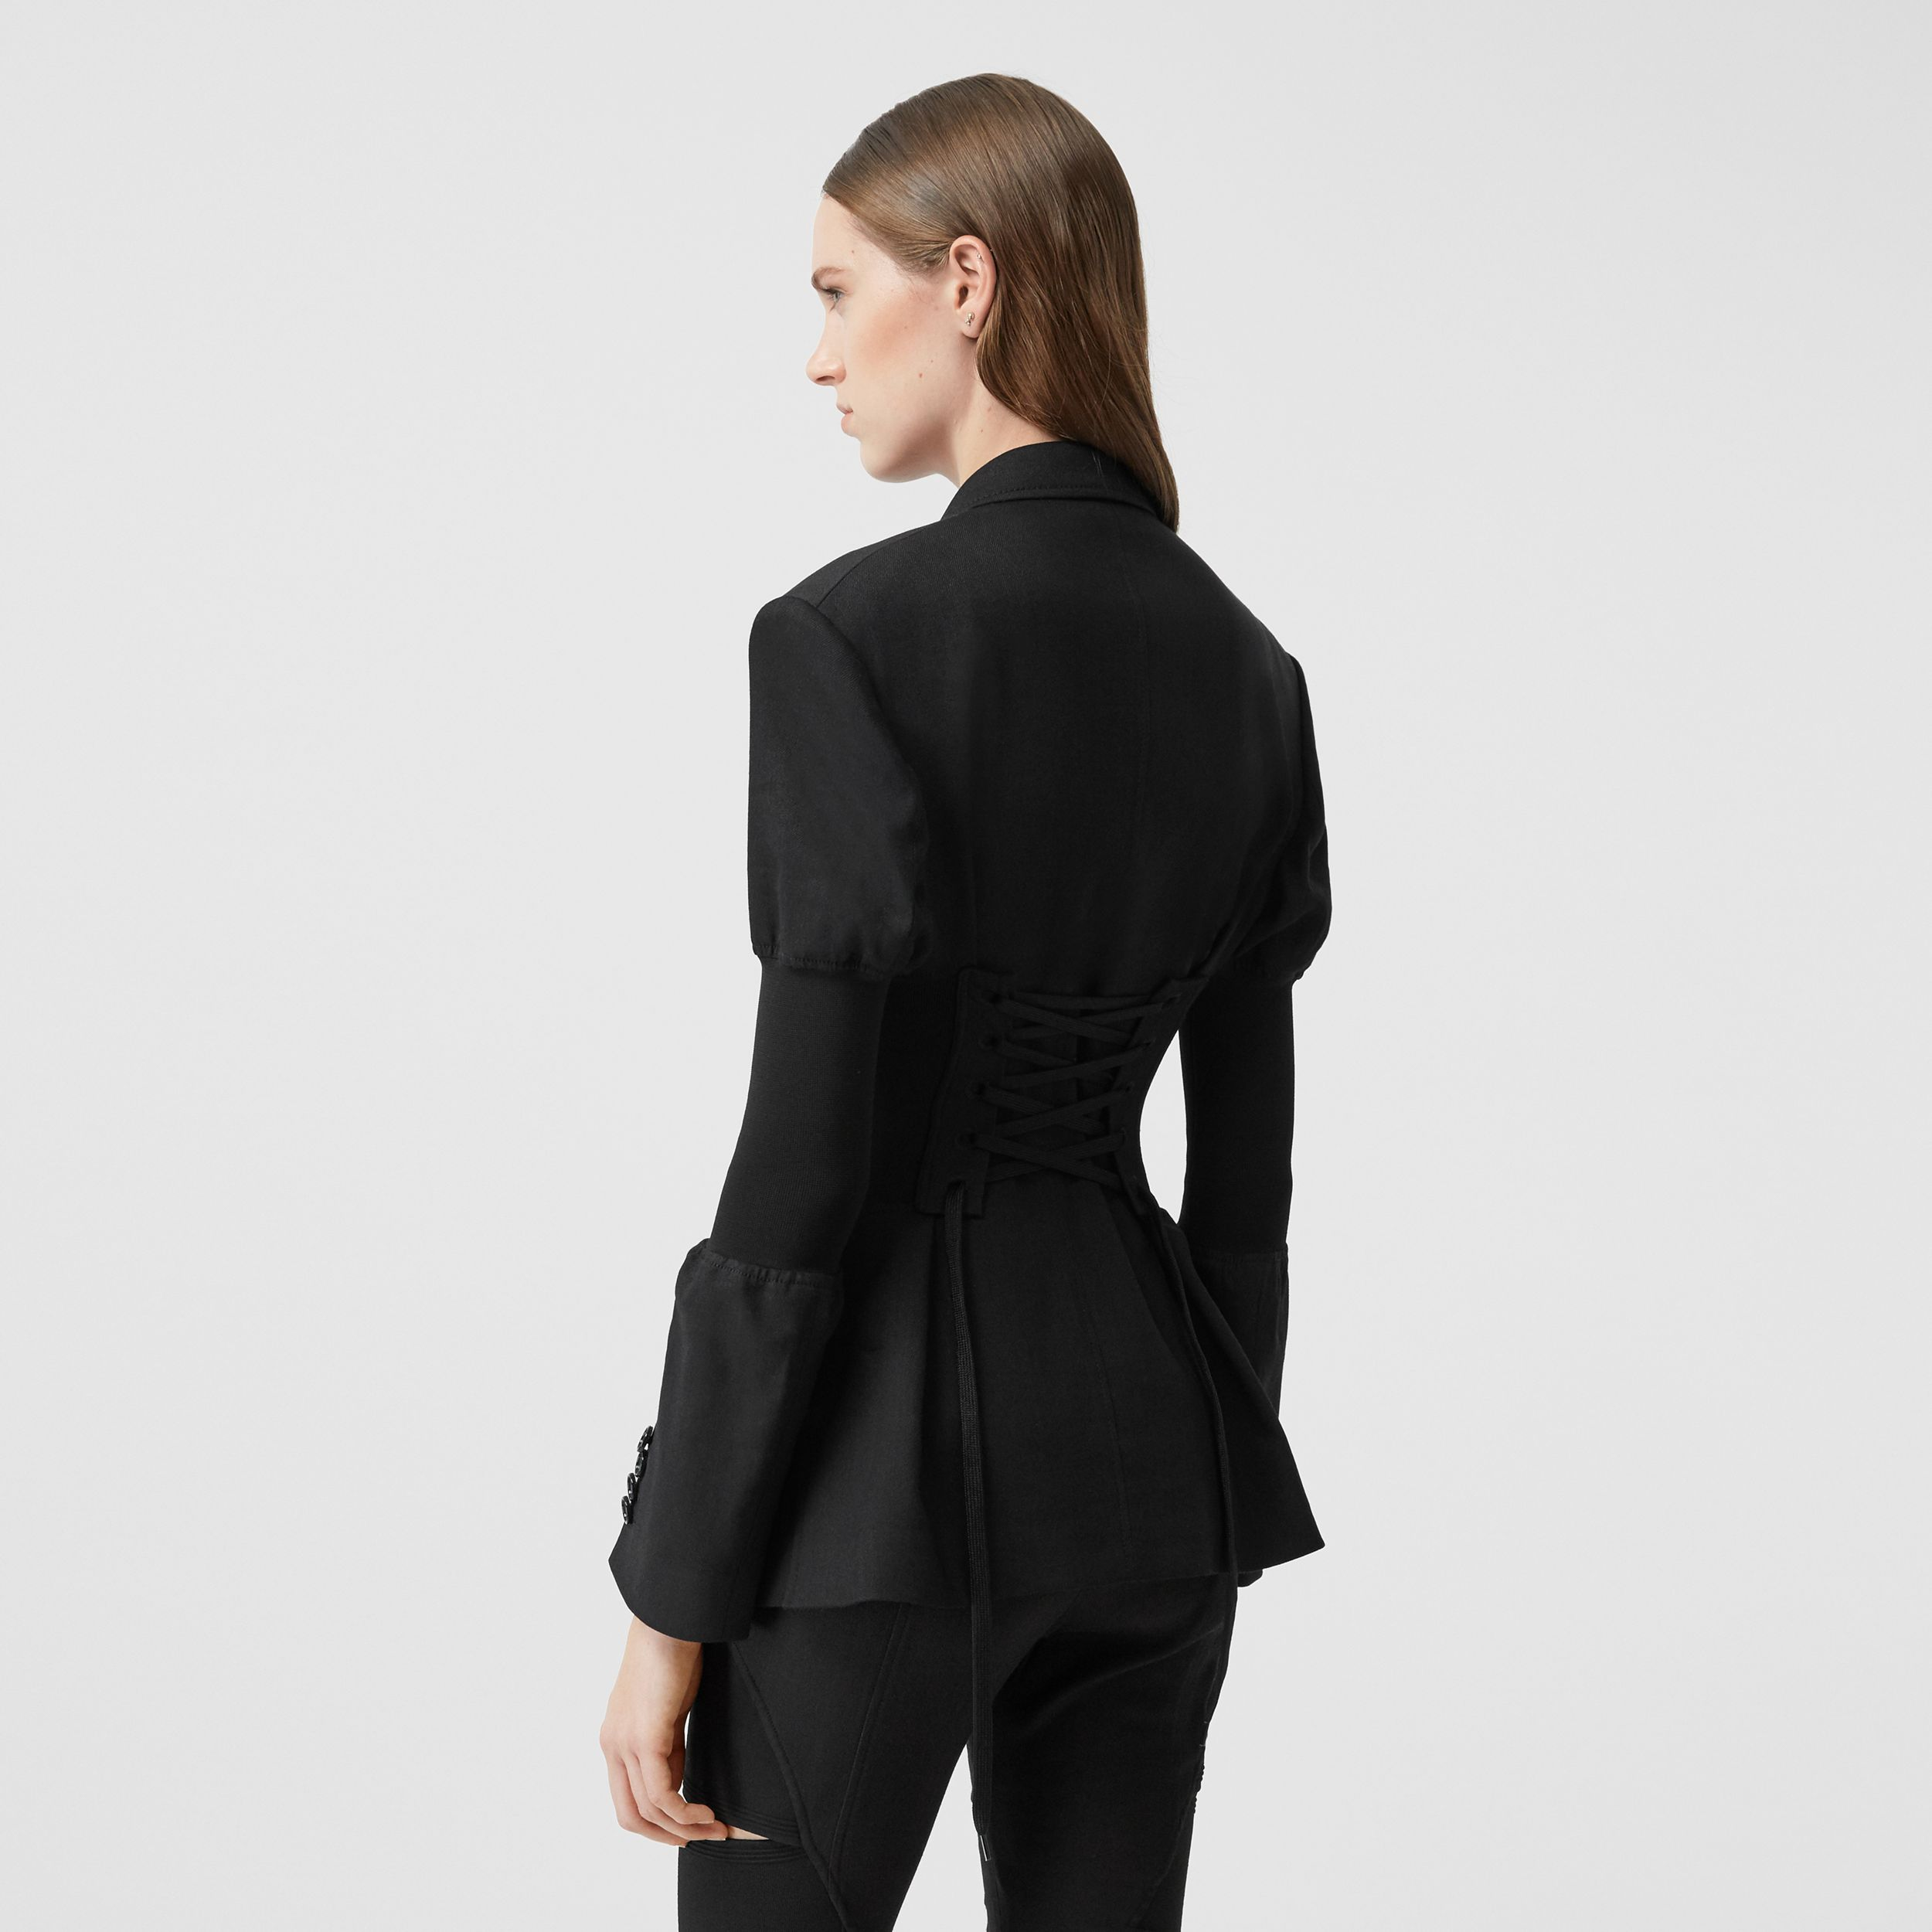 Technical Twill Reconstructed Blazer in Black - Women | Burberry - 3